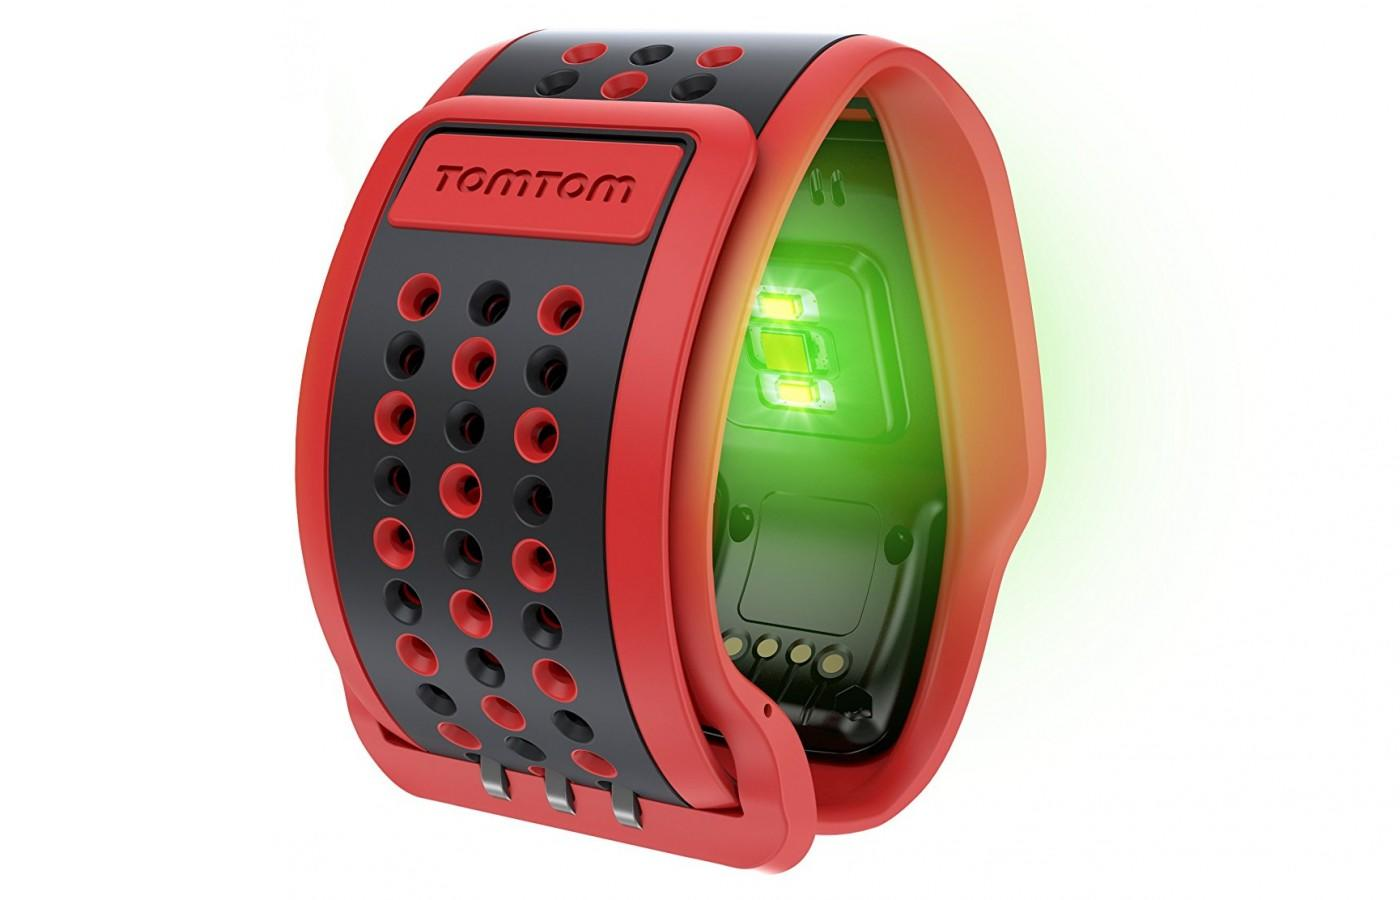 TomTom Multisport has unique functionality